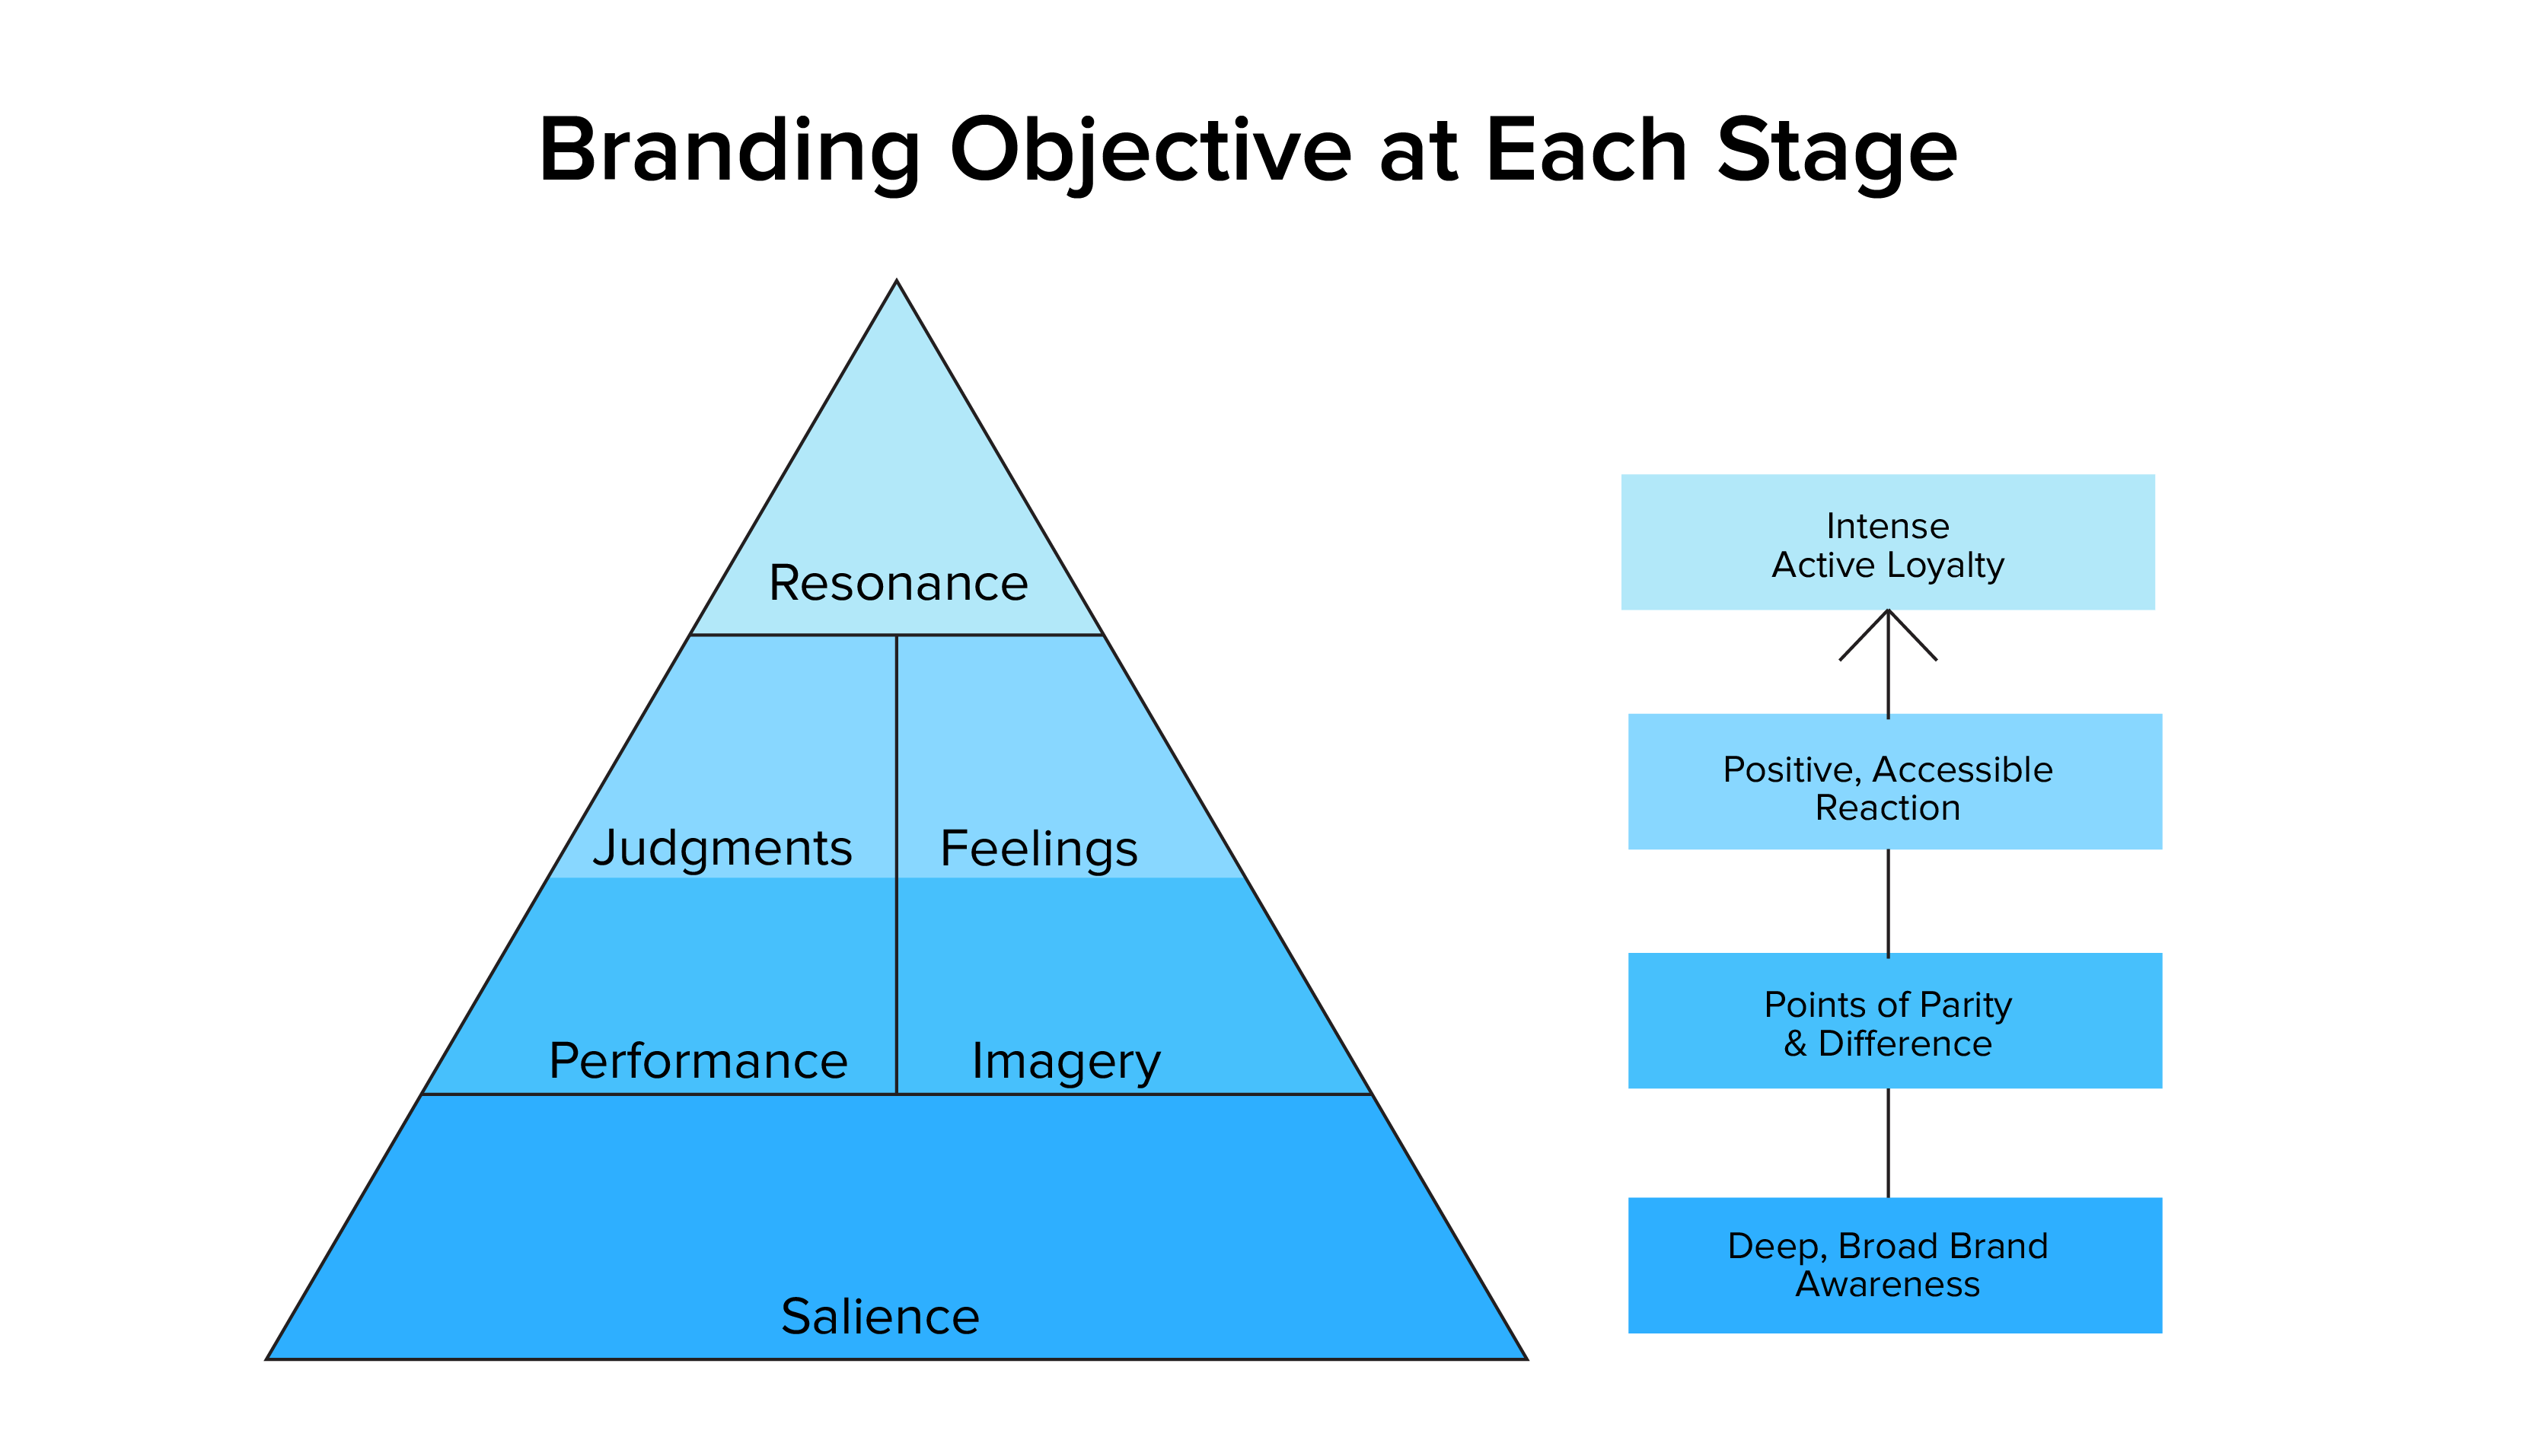 Branding Objective at Each Stage